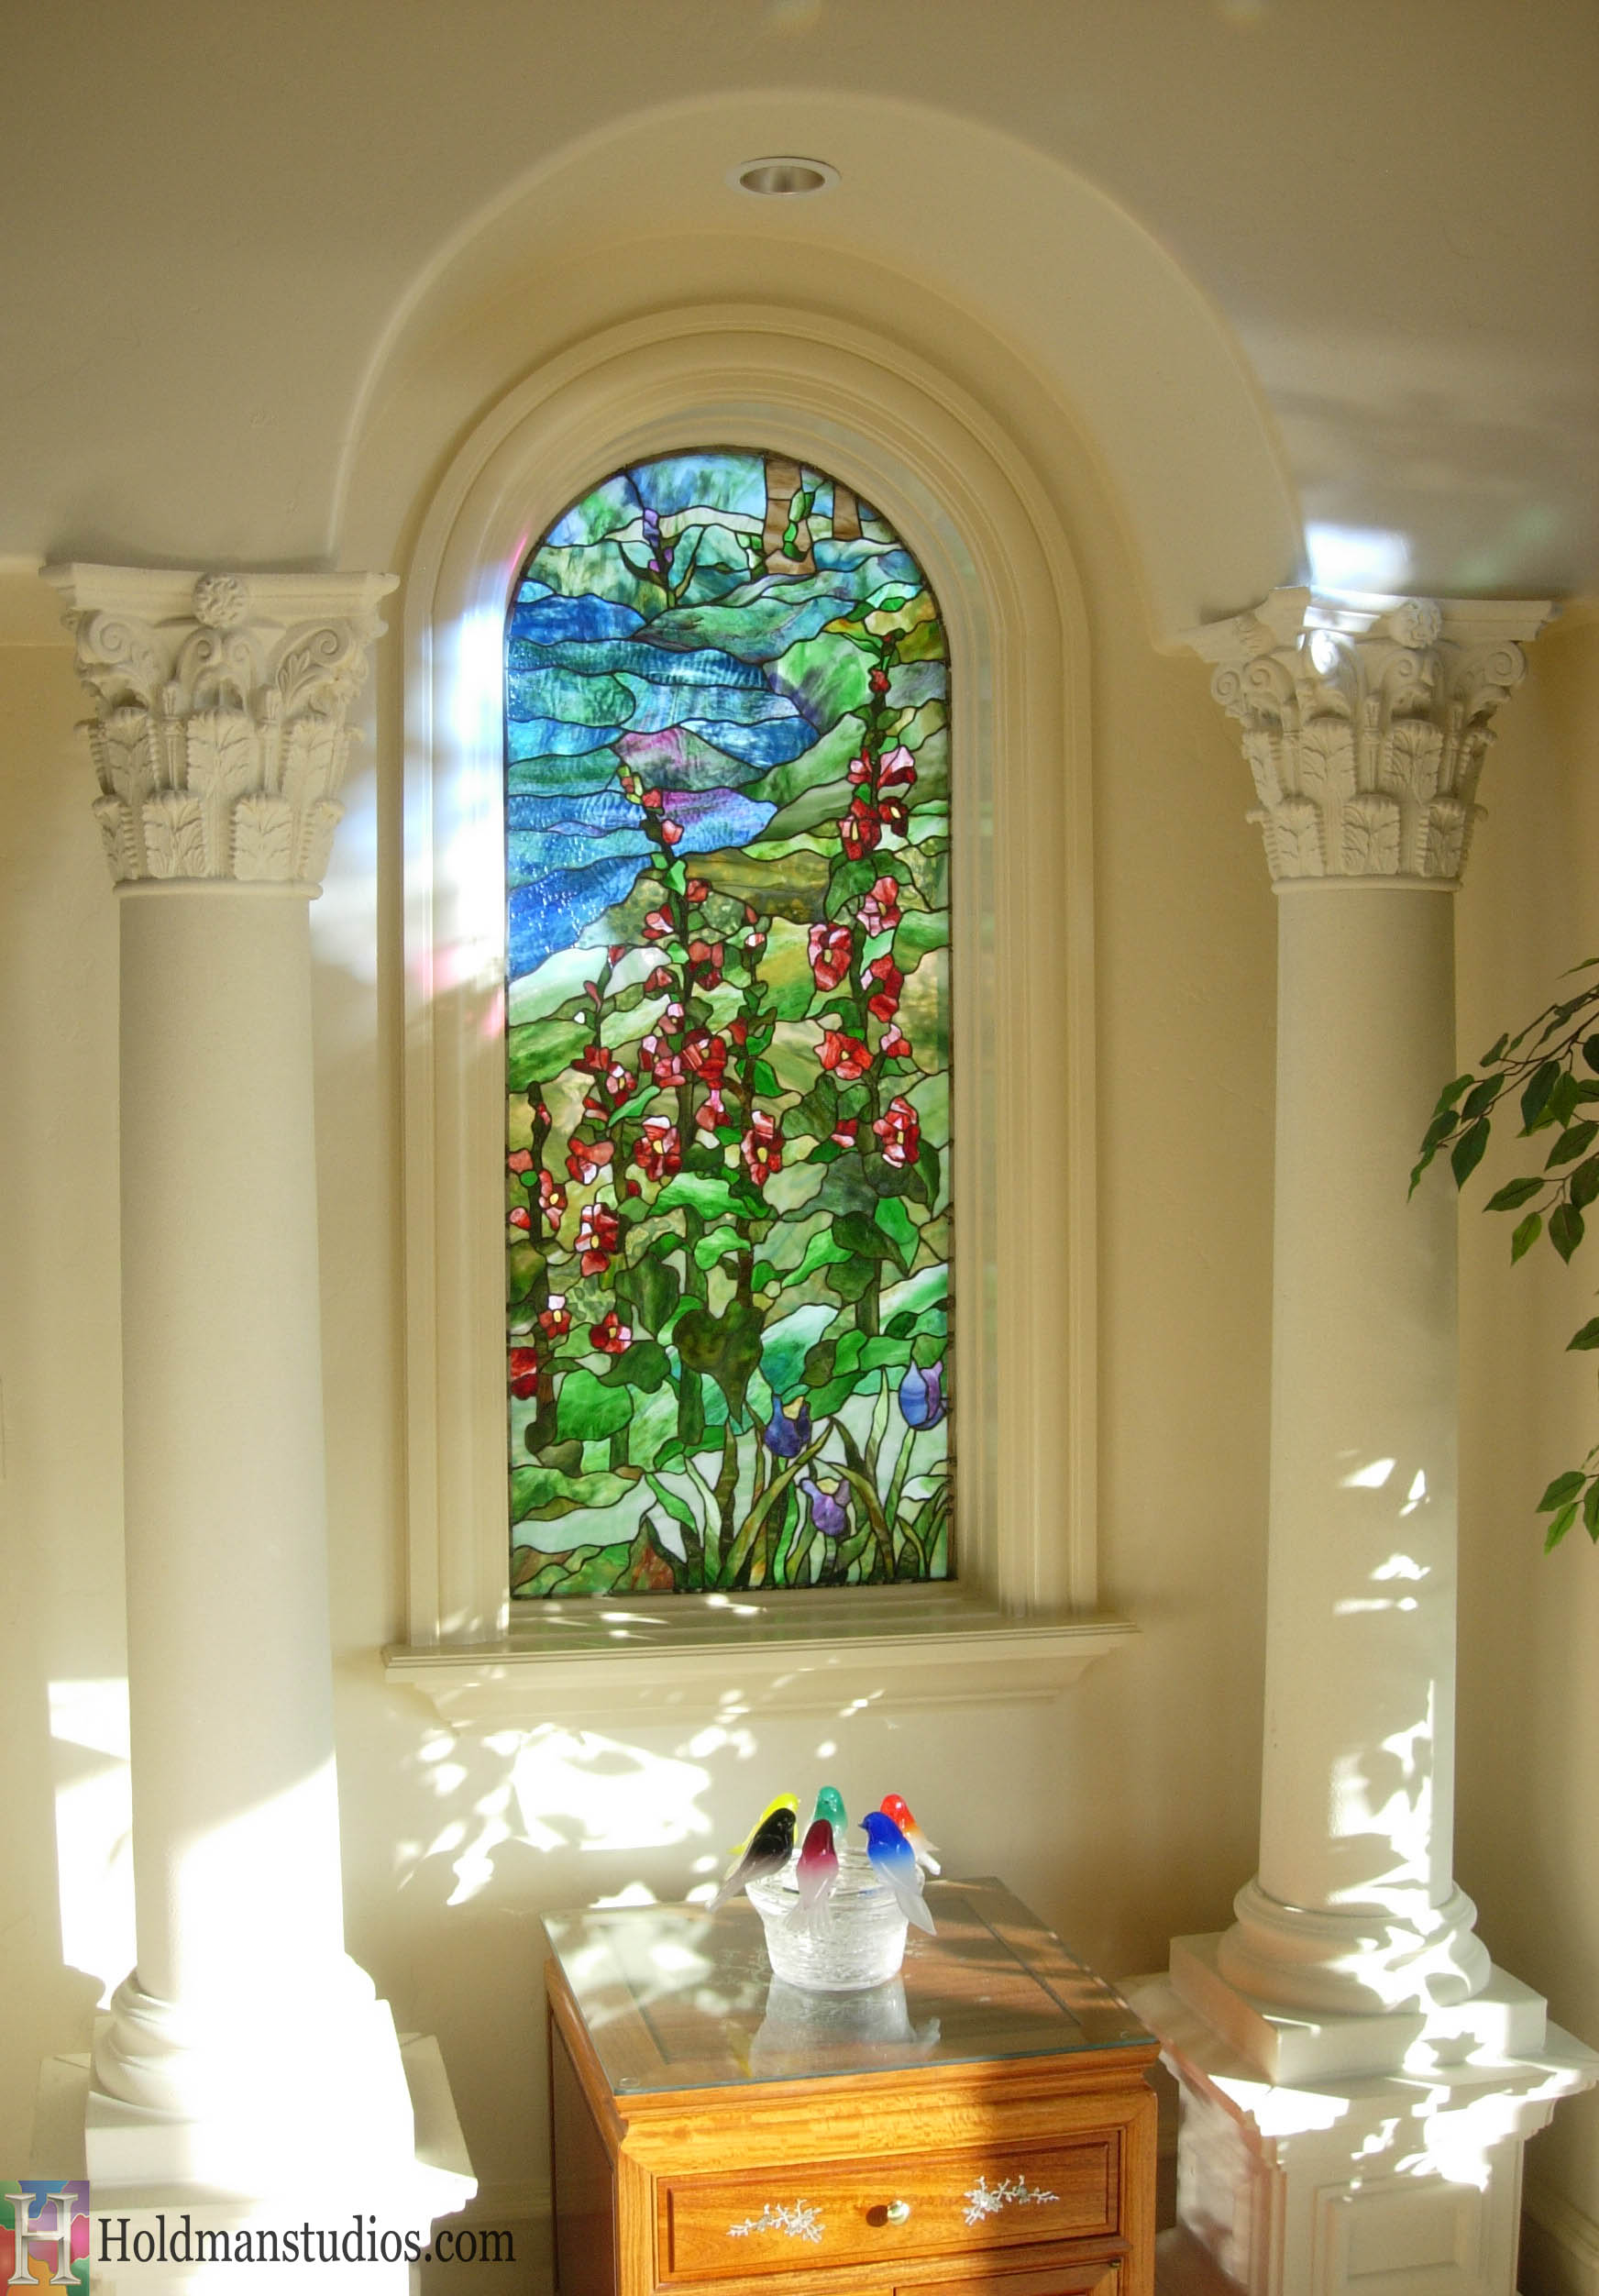 Stained Glass side Bedroom window with trees, river water, flowers, grass, mountains, and clouds in the sky.Created by artists under the direction of Tom Holdman at Holdman Studios.